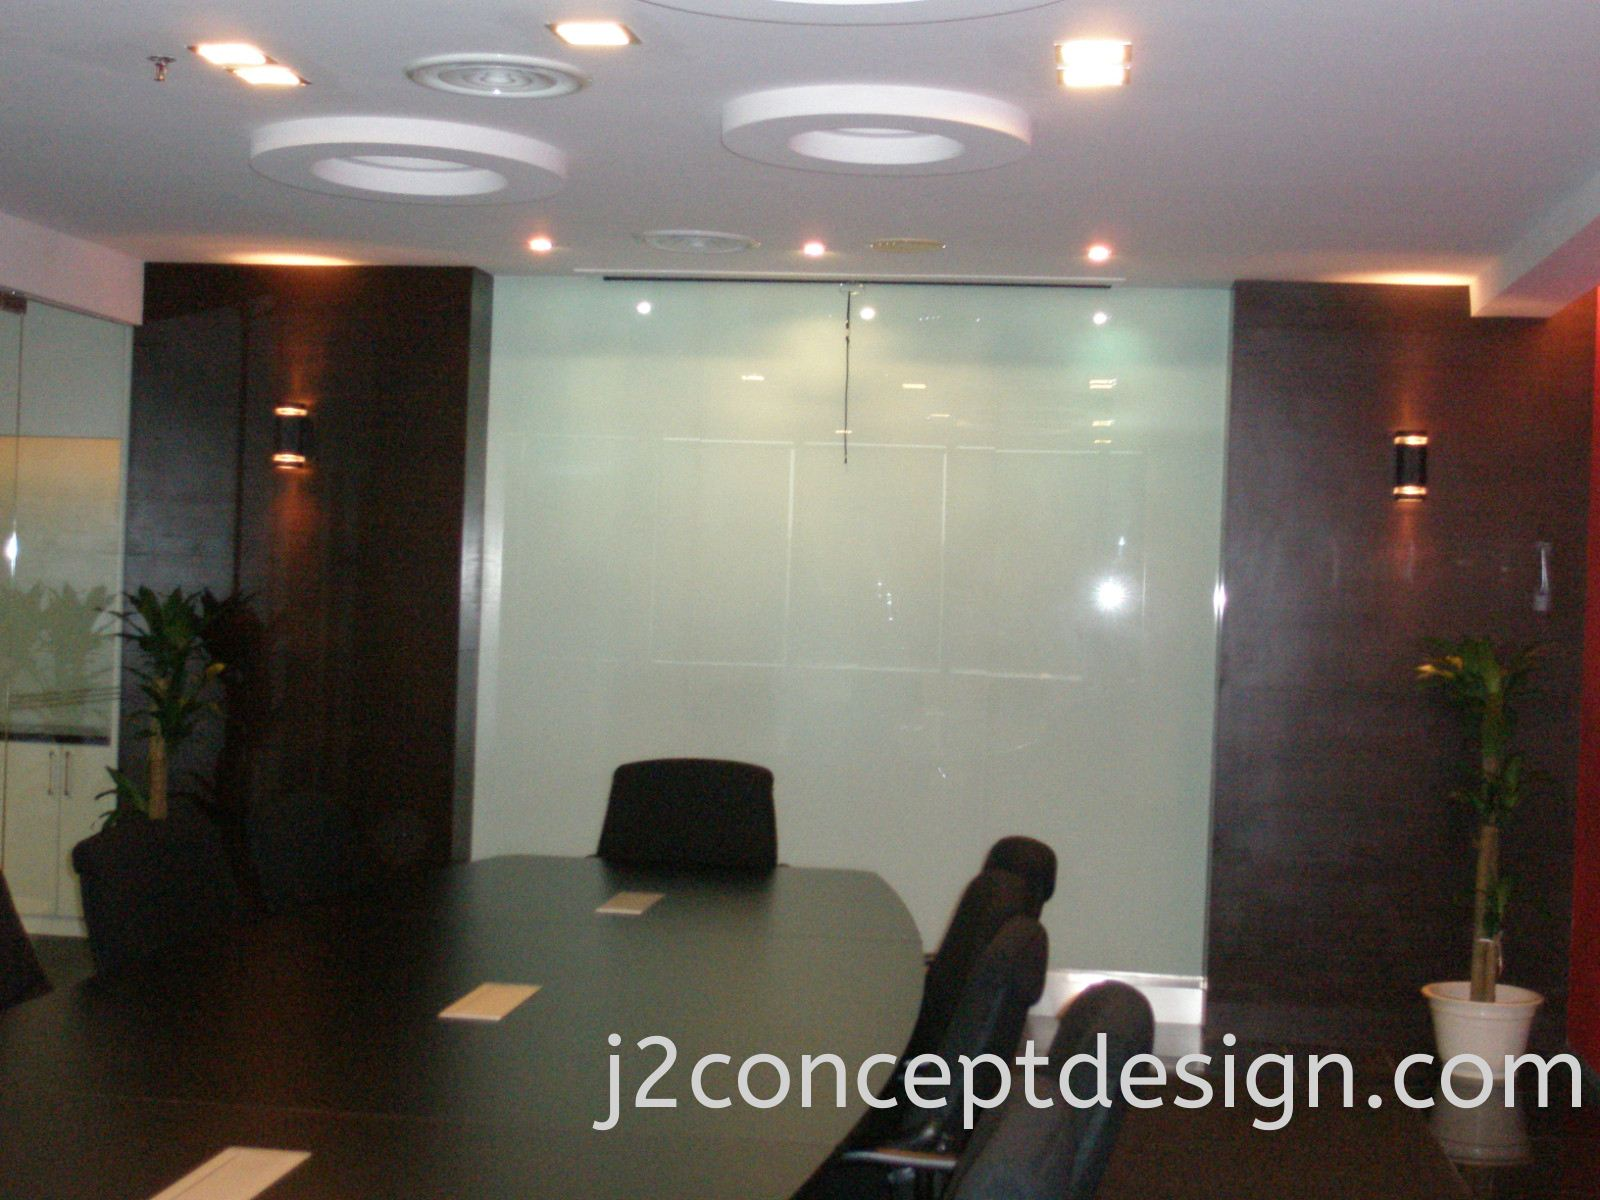 Interior Design & Office Design Malaysia @ Conference Room